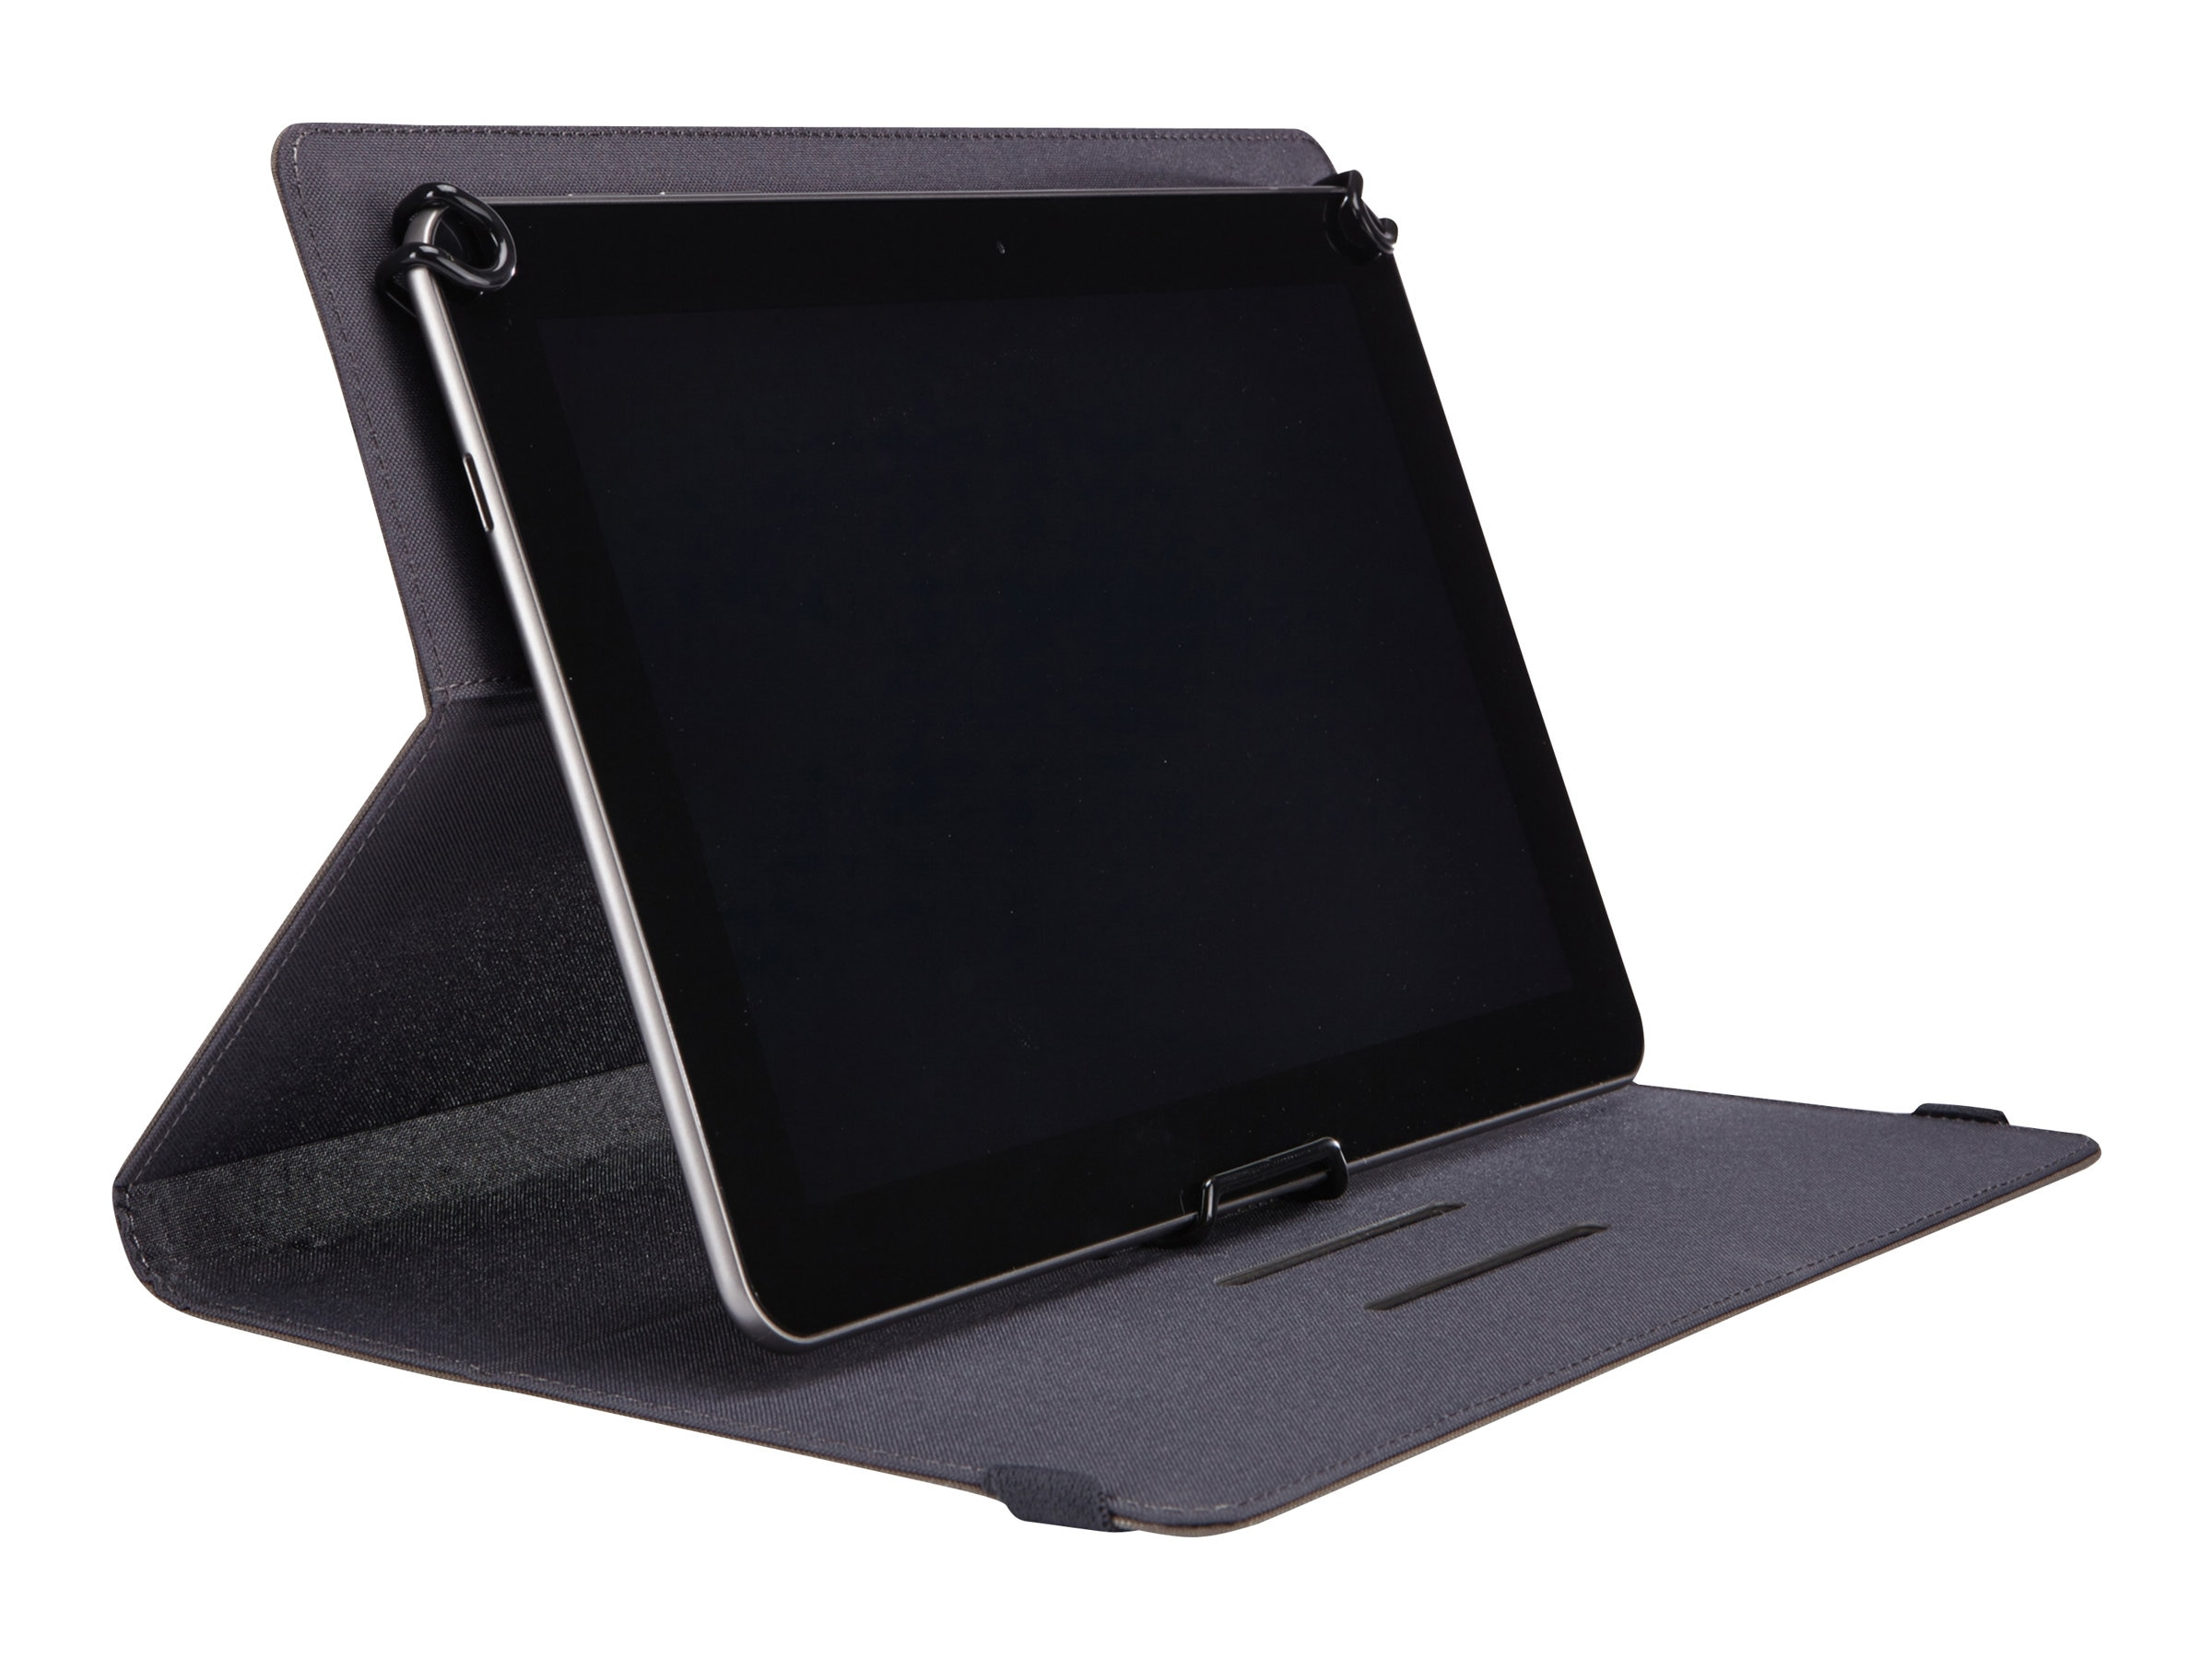 Case Logic SureFit Folio for 9-10 Tablet, Morel, UFOL-210MOREL, 16815731, Carrying Cases - Tablets & eReaders